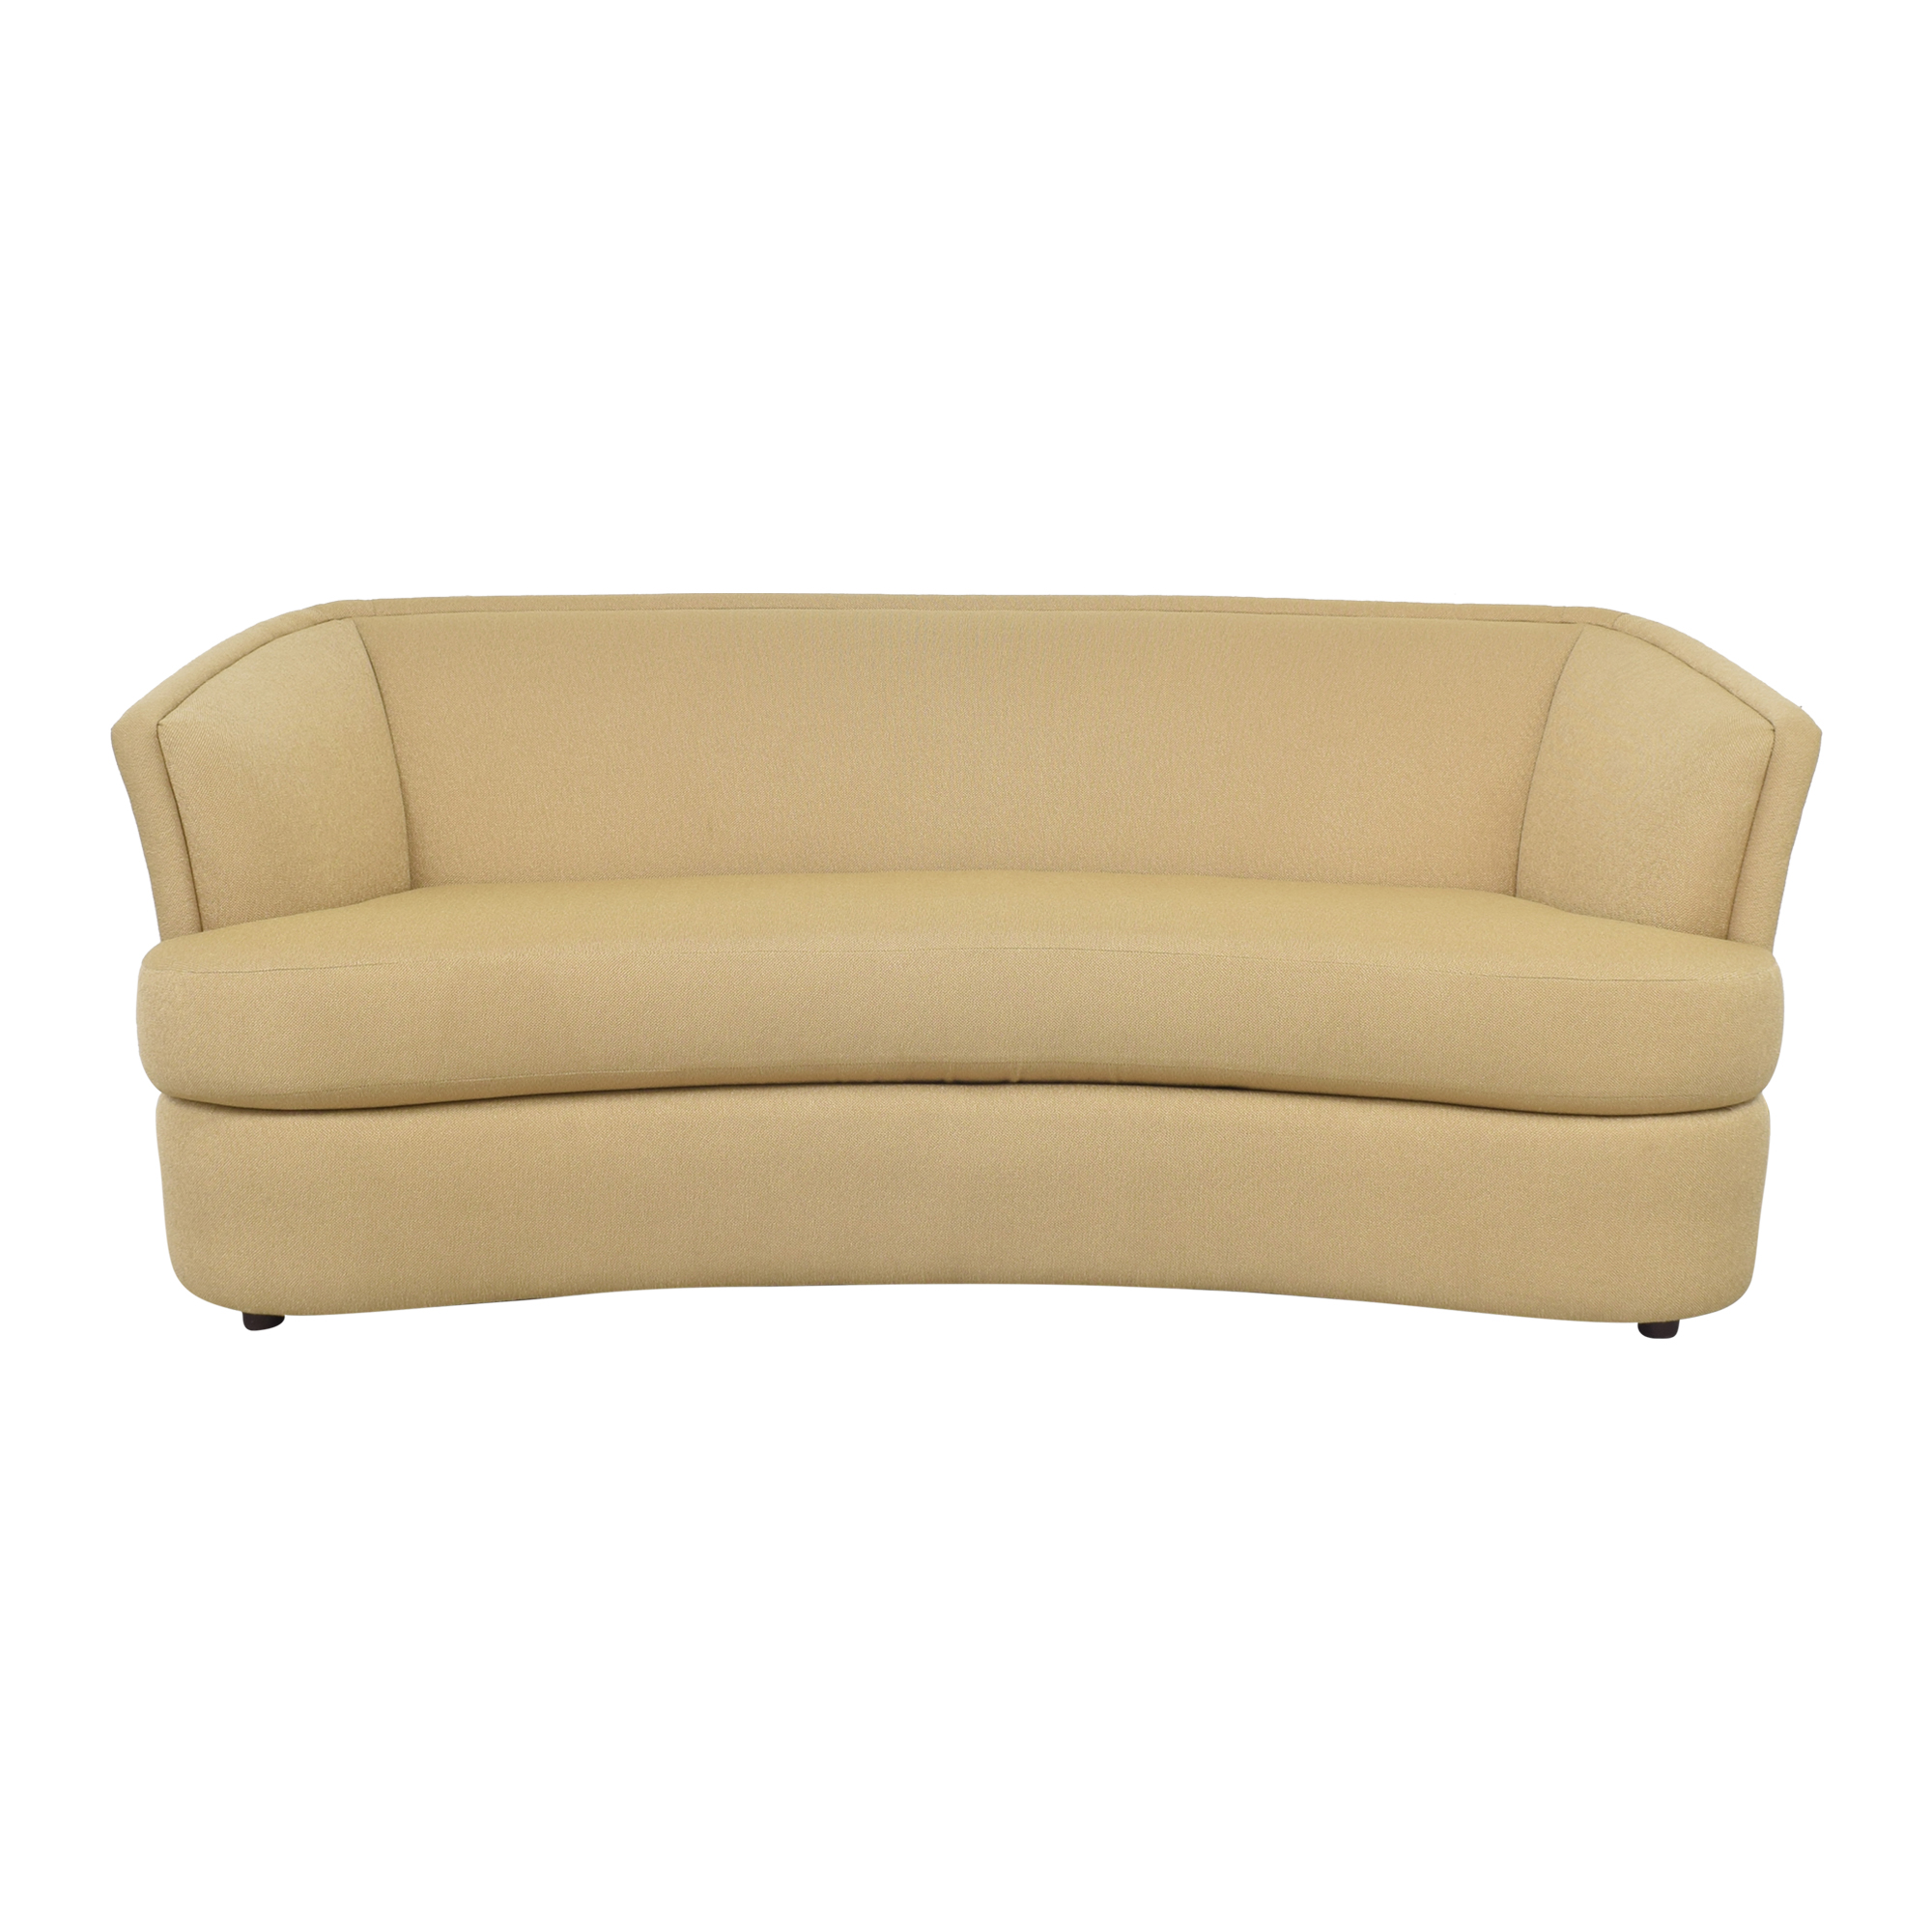 Safavieh Safavieh Curved Sofa nyc